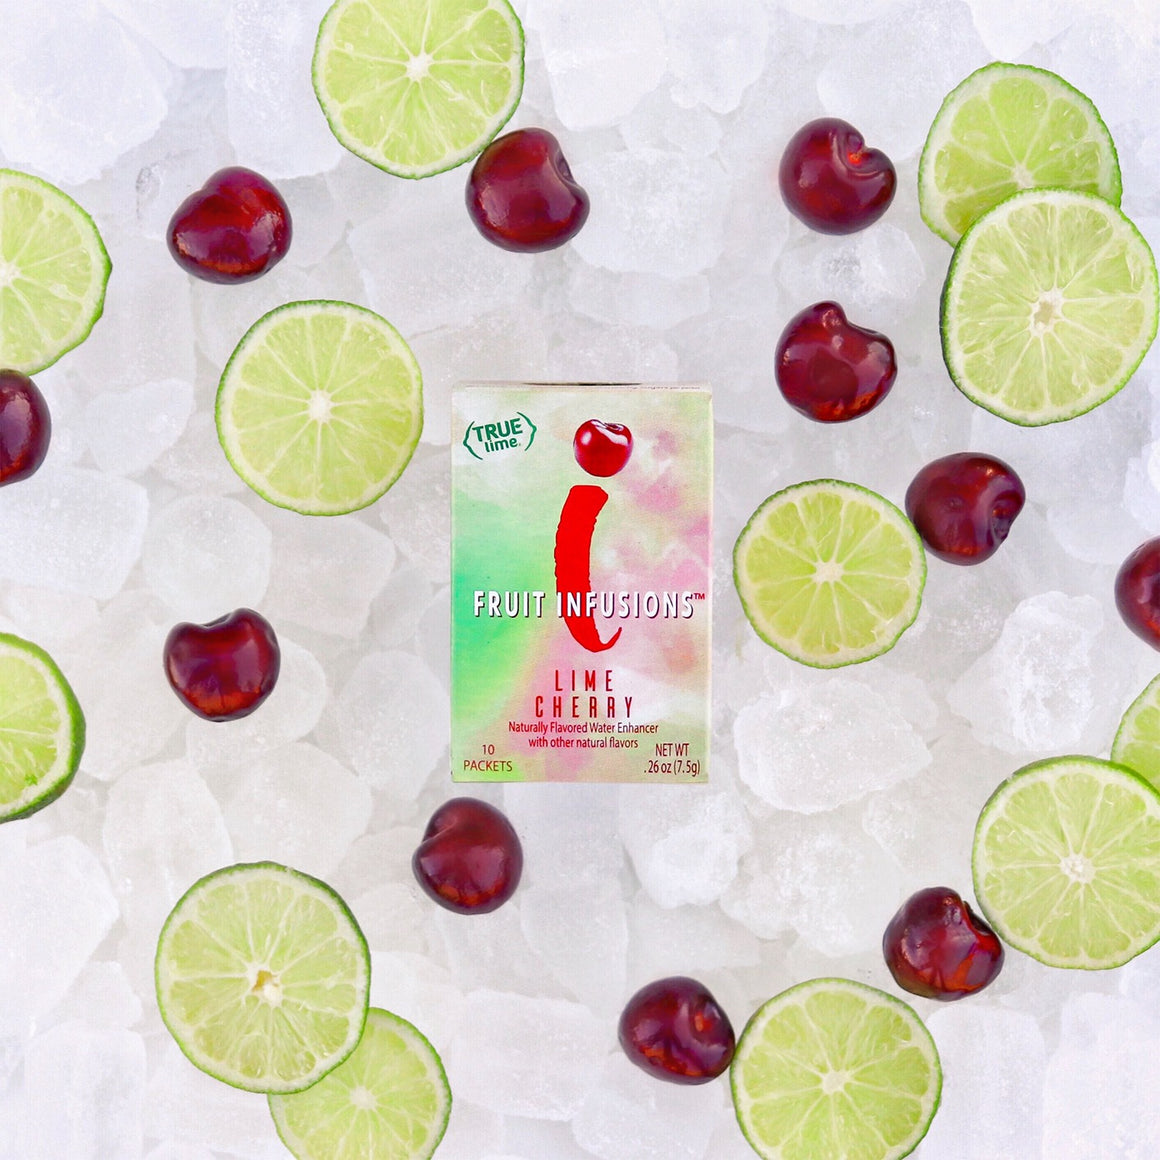 True Lemon Fruit Infusions Lime Cherry 10-Count